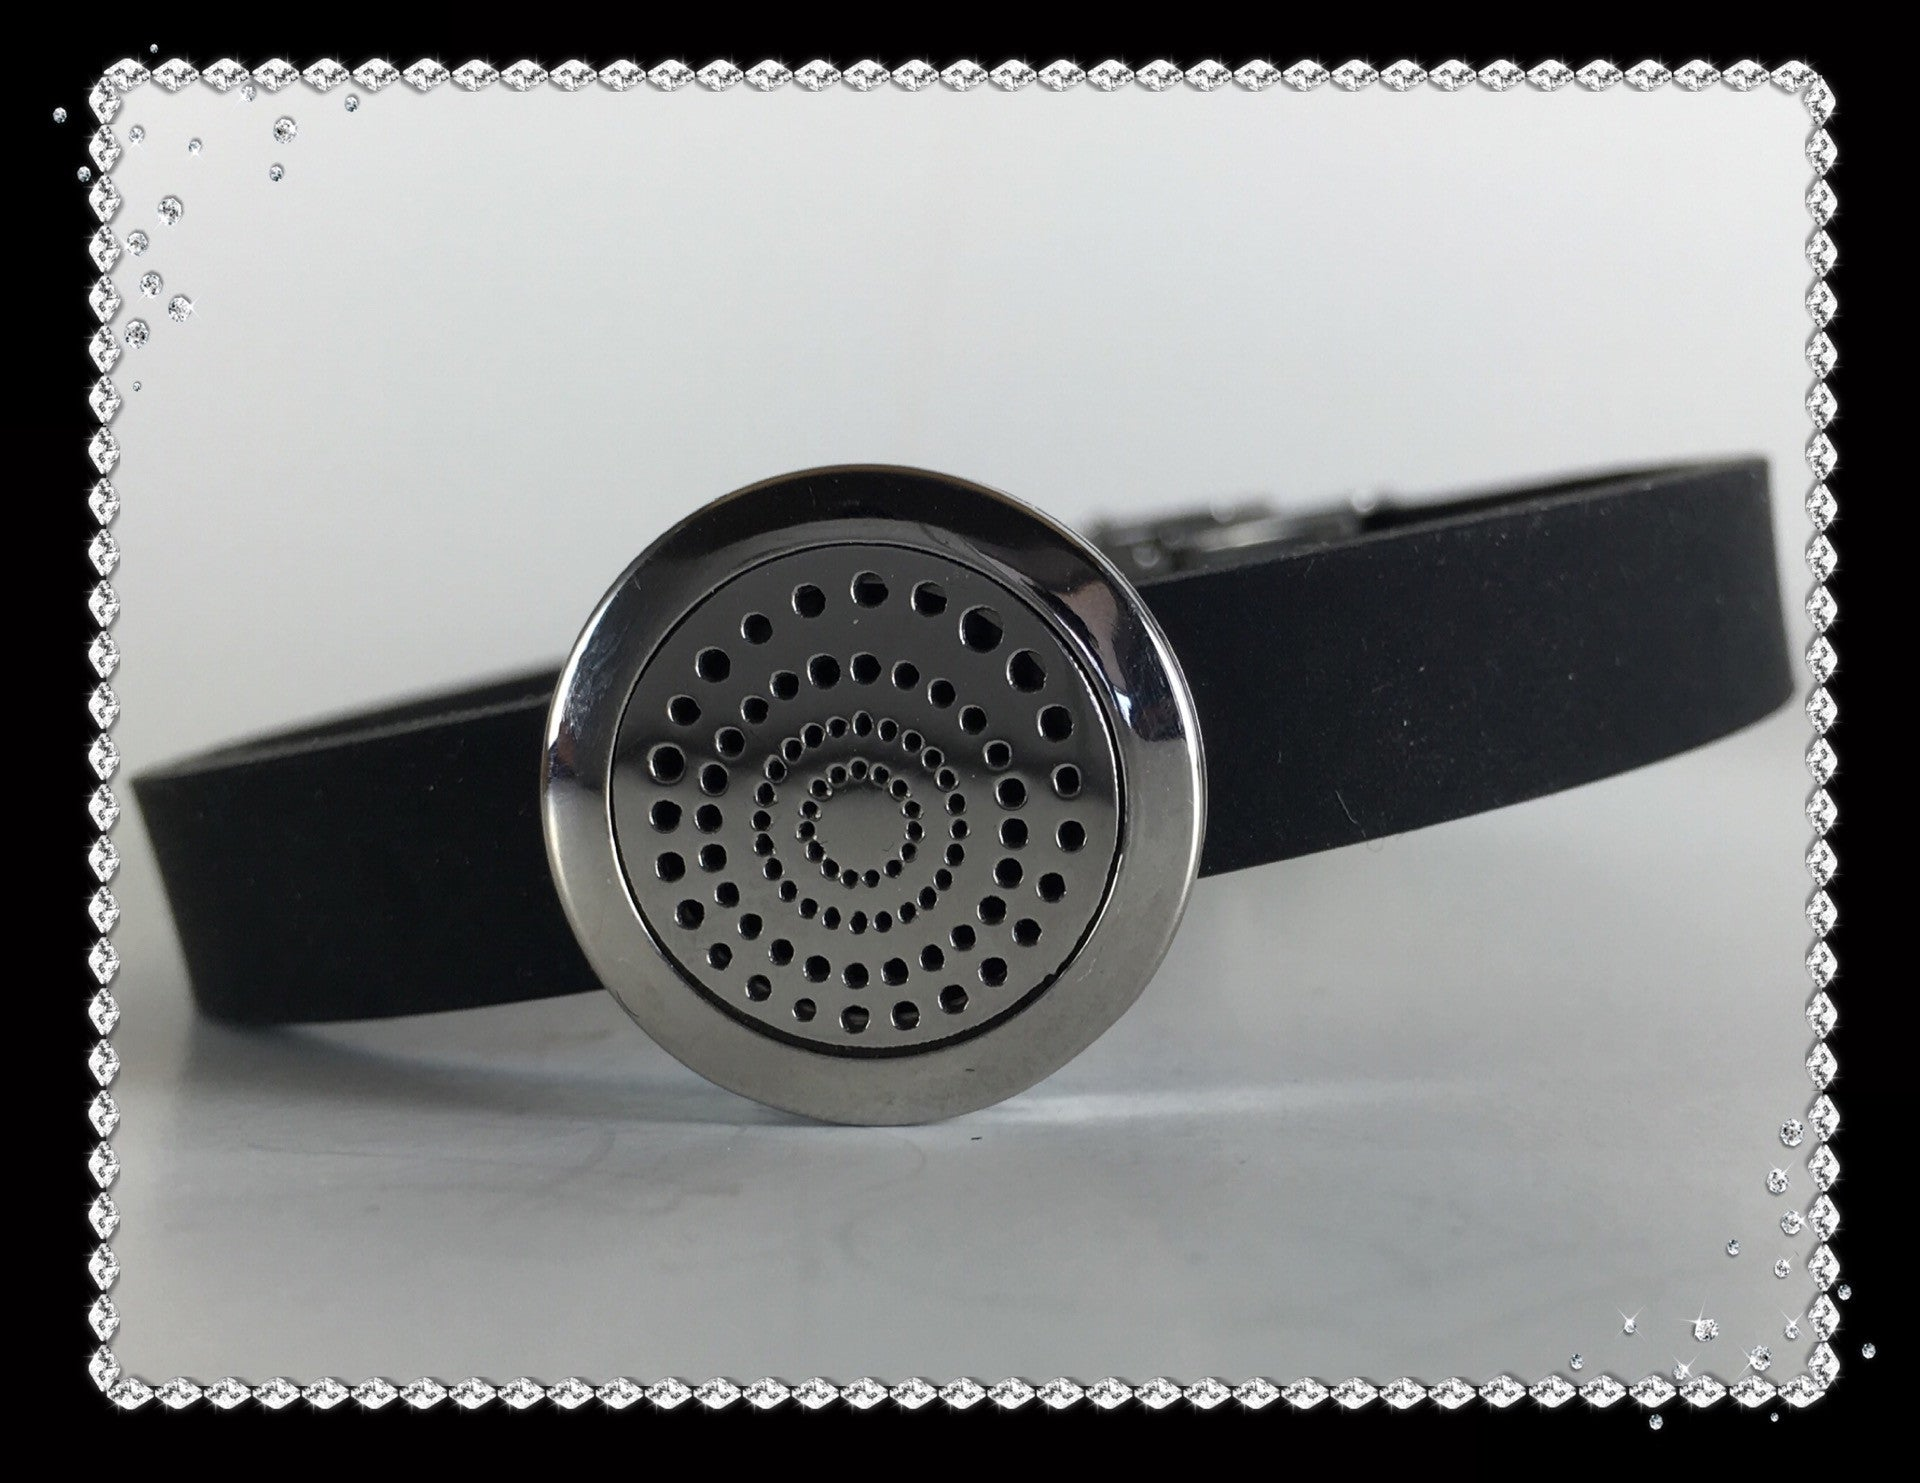 Black Rubber and Stainless Steel 20mm Drain Diffuser Bracelet